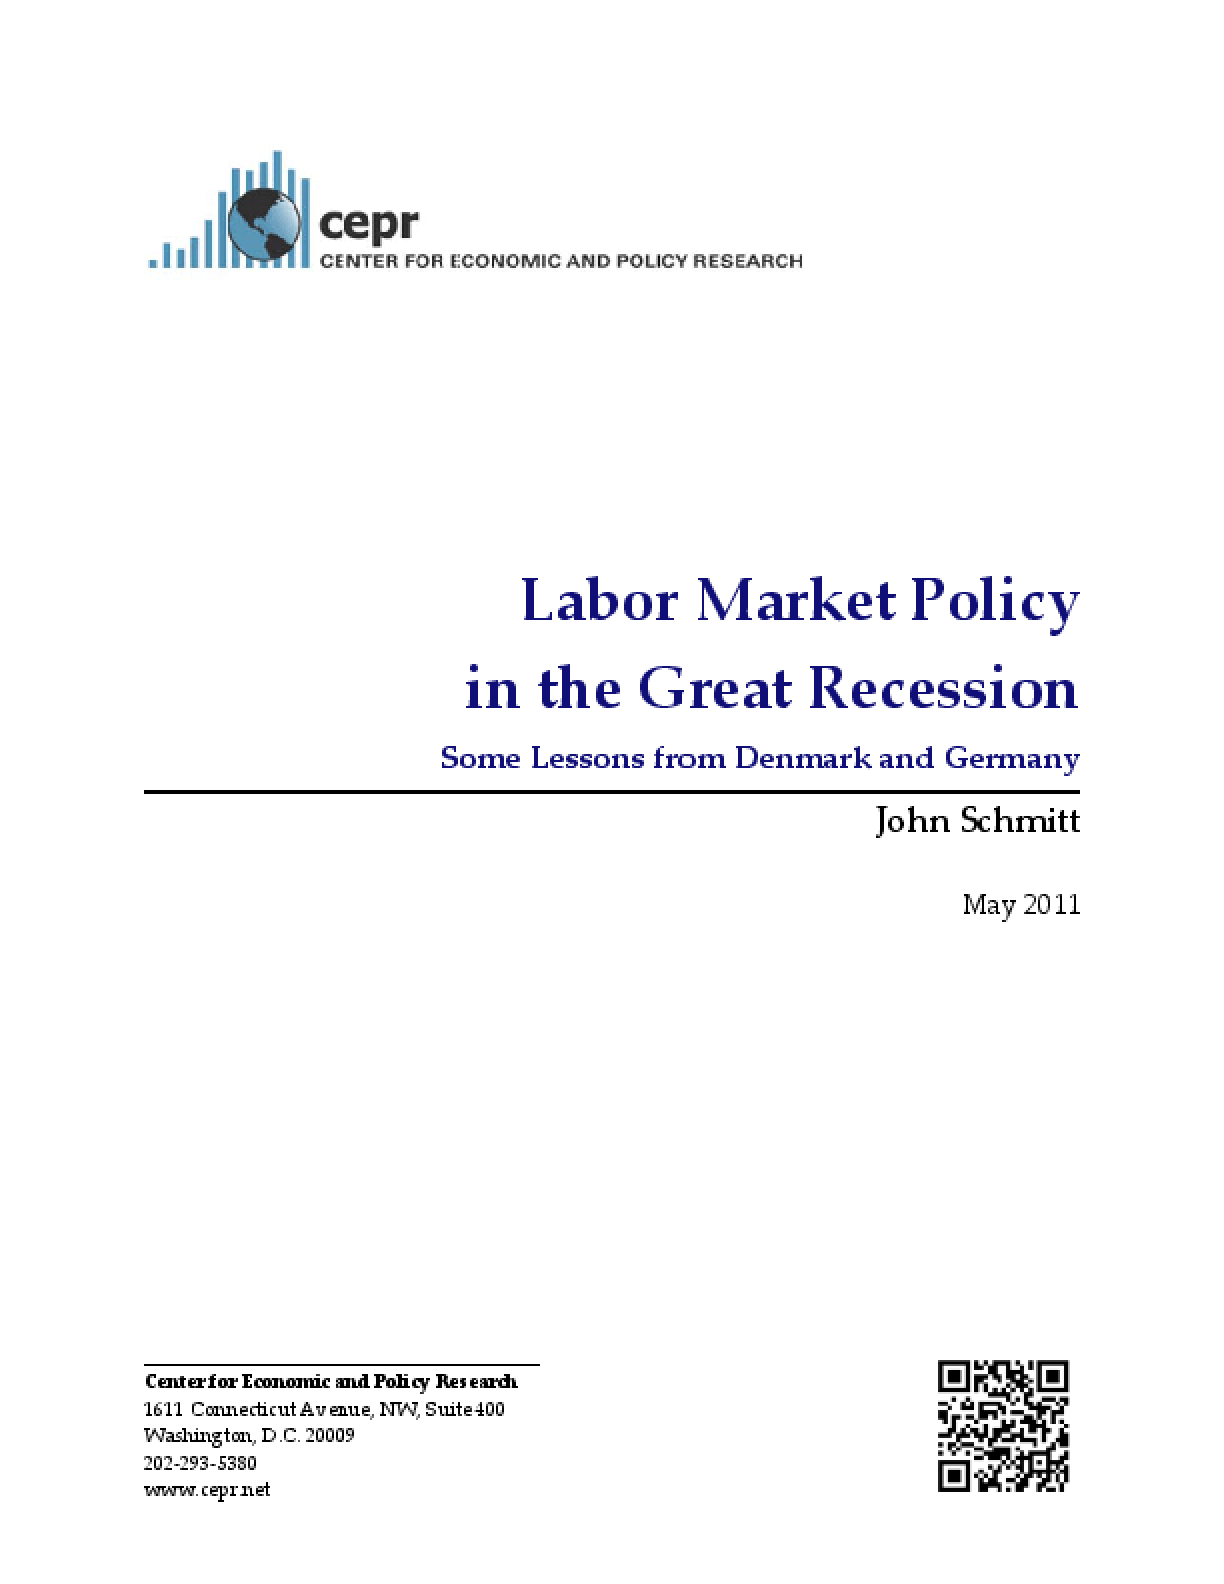 Labor Market Policy in the Great Recession: Some Lessons from Denmark and Germany